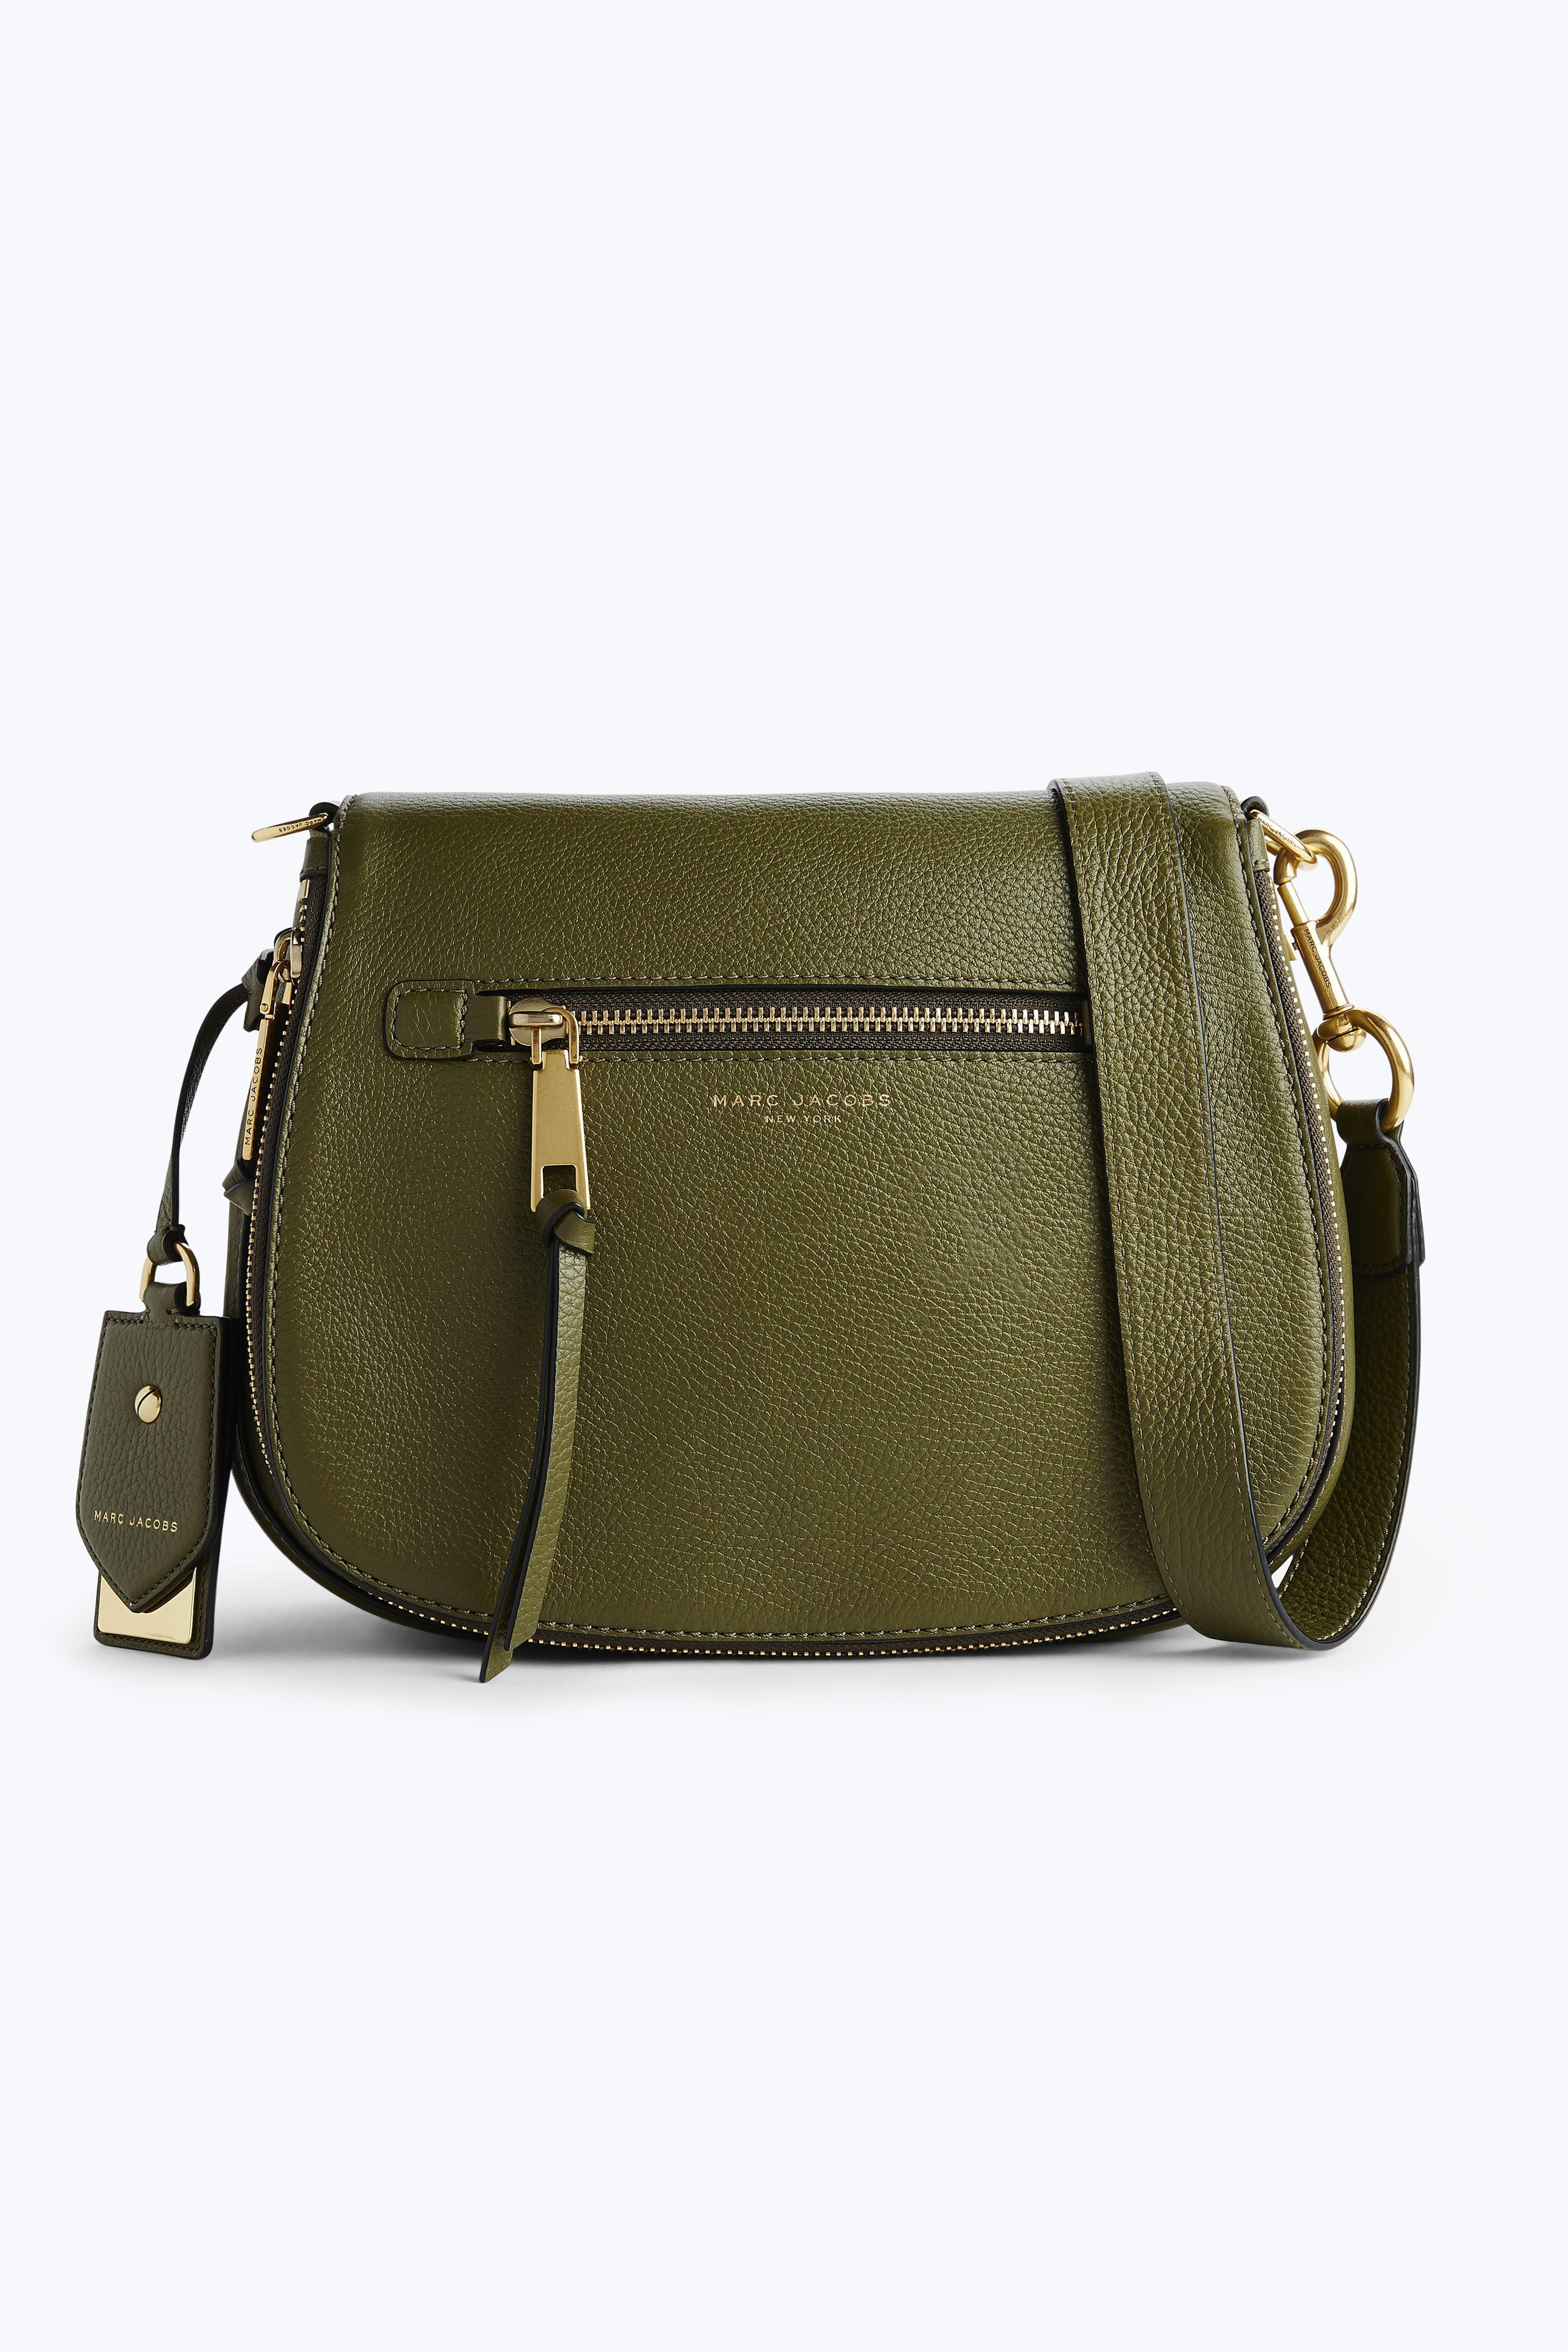 Marc Jacobs Recruit Nomad Leather Saddle Bag In Army Green